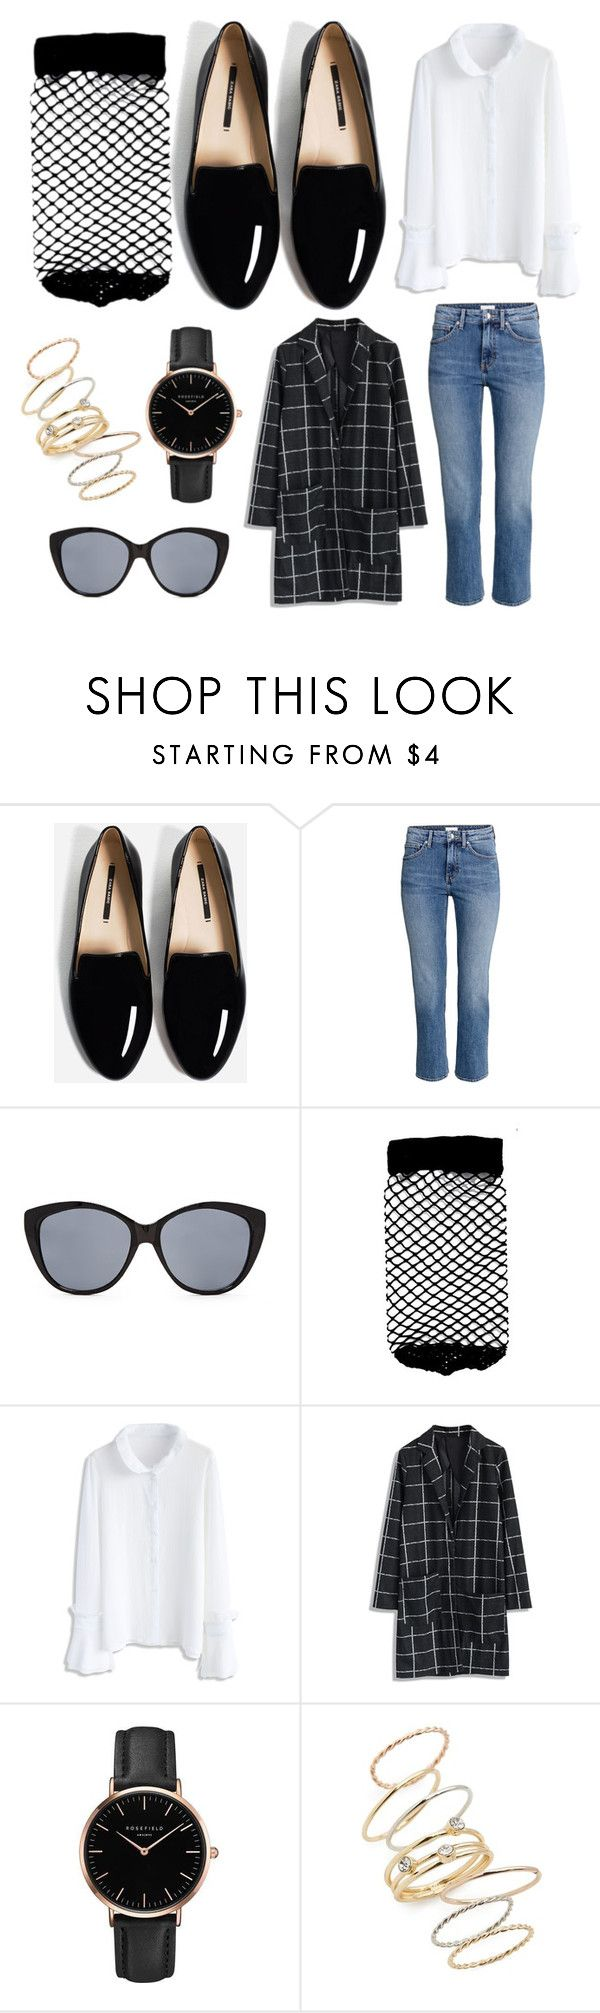 See how to style fishnet socks with black loafers for a fun fall outfit!